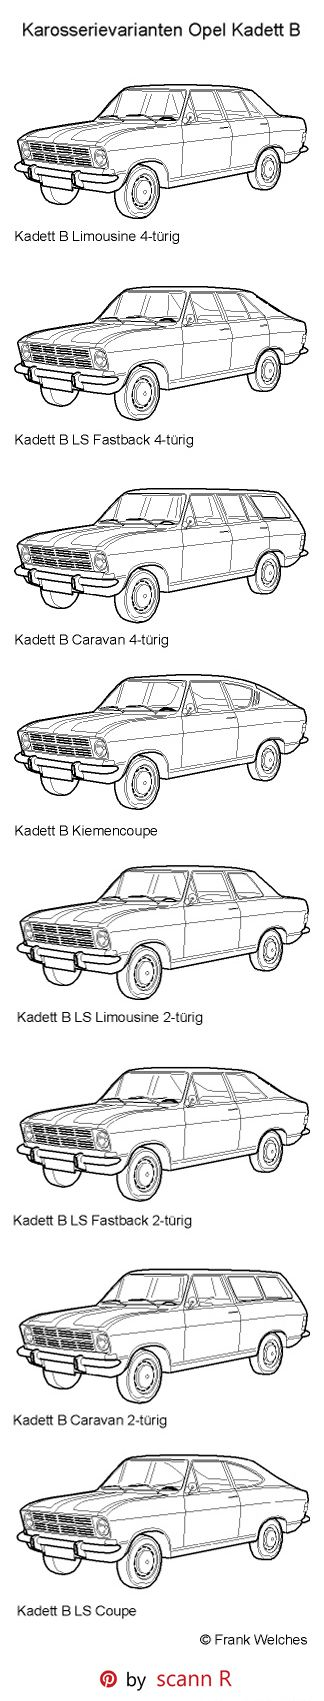 """The Opel Kadett B was launched by Opel at the Frankfurt Motor Show (Germany) in late summer 1965. The Kadett B was larger all-round than the previous Kadett A. But 10 mm (0.39 inch) lower in the basic standard """"Limousine"""" (sedan/saloon) form. Production went on for 8 years and ended in July 1973,"""